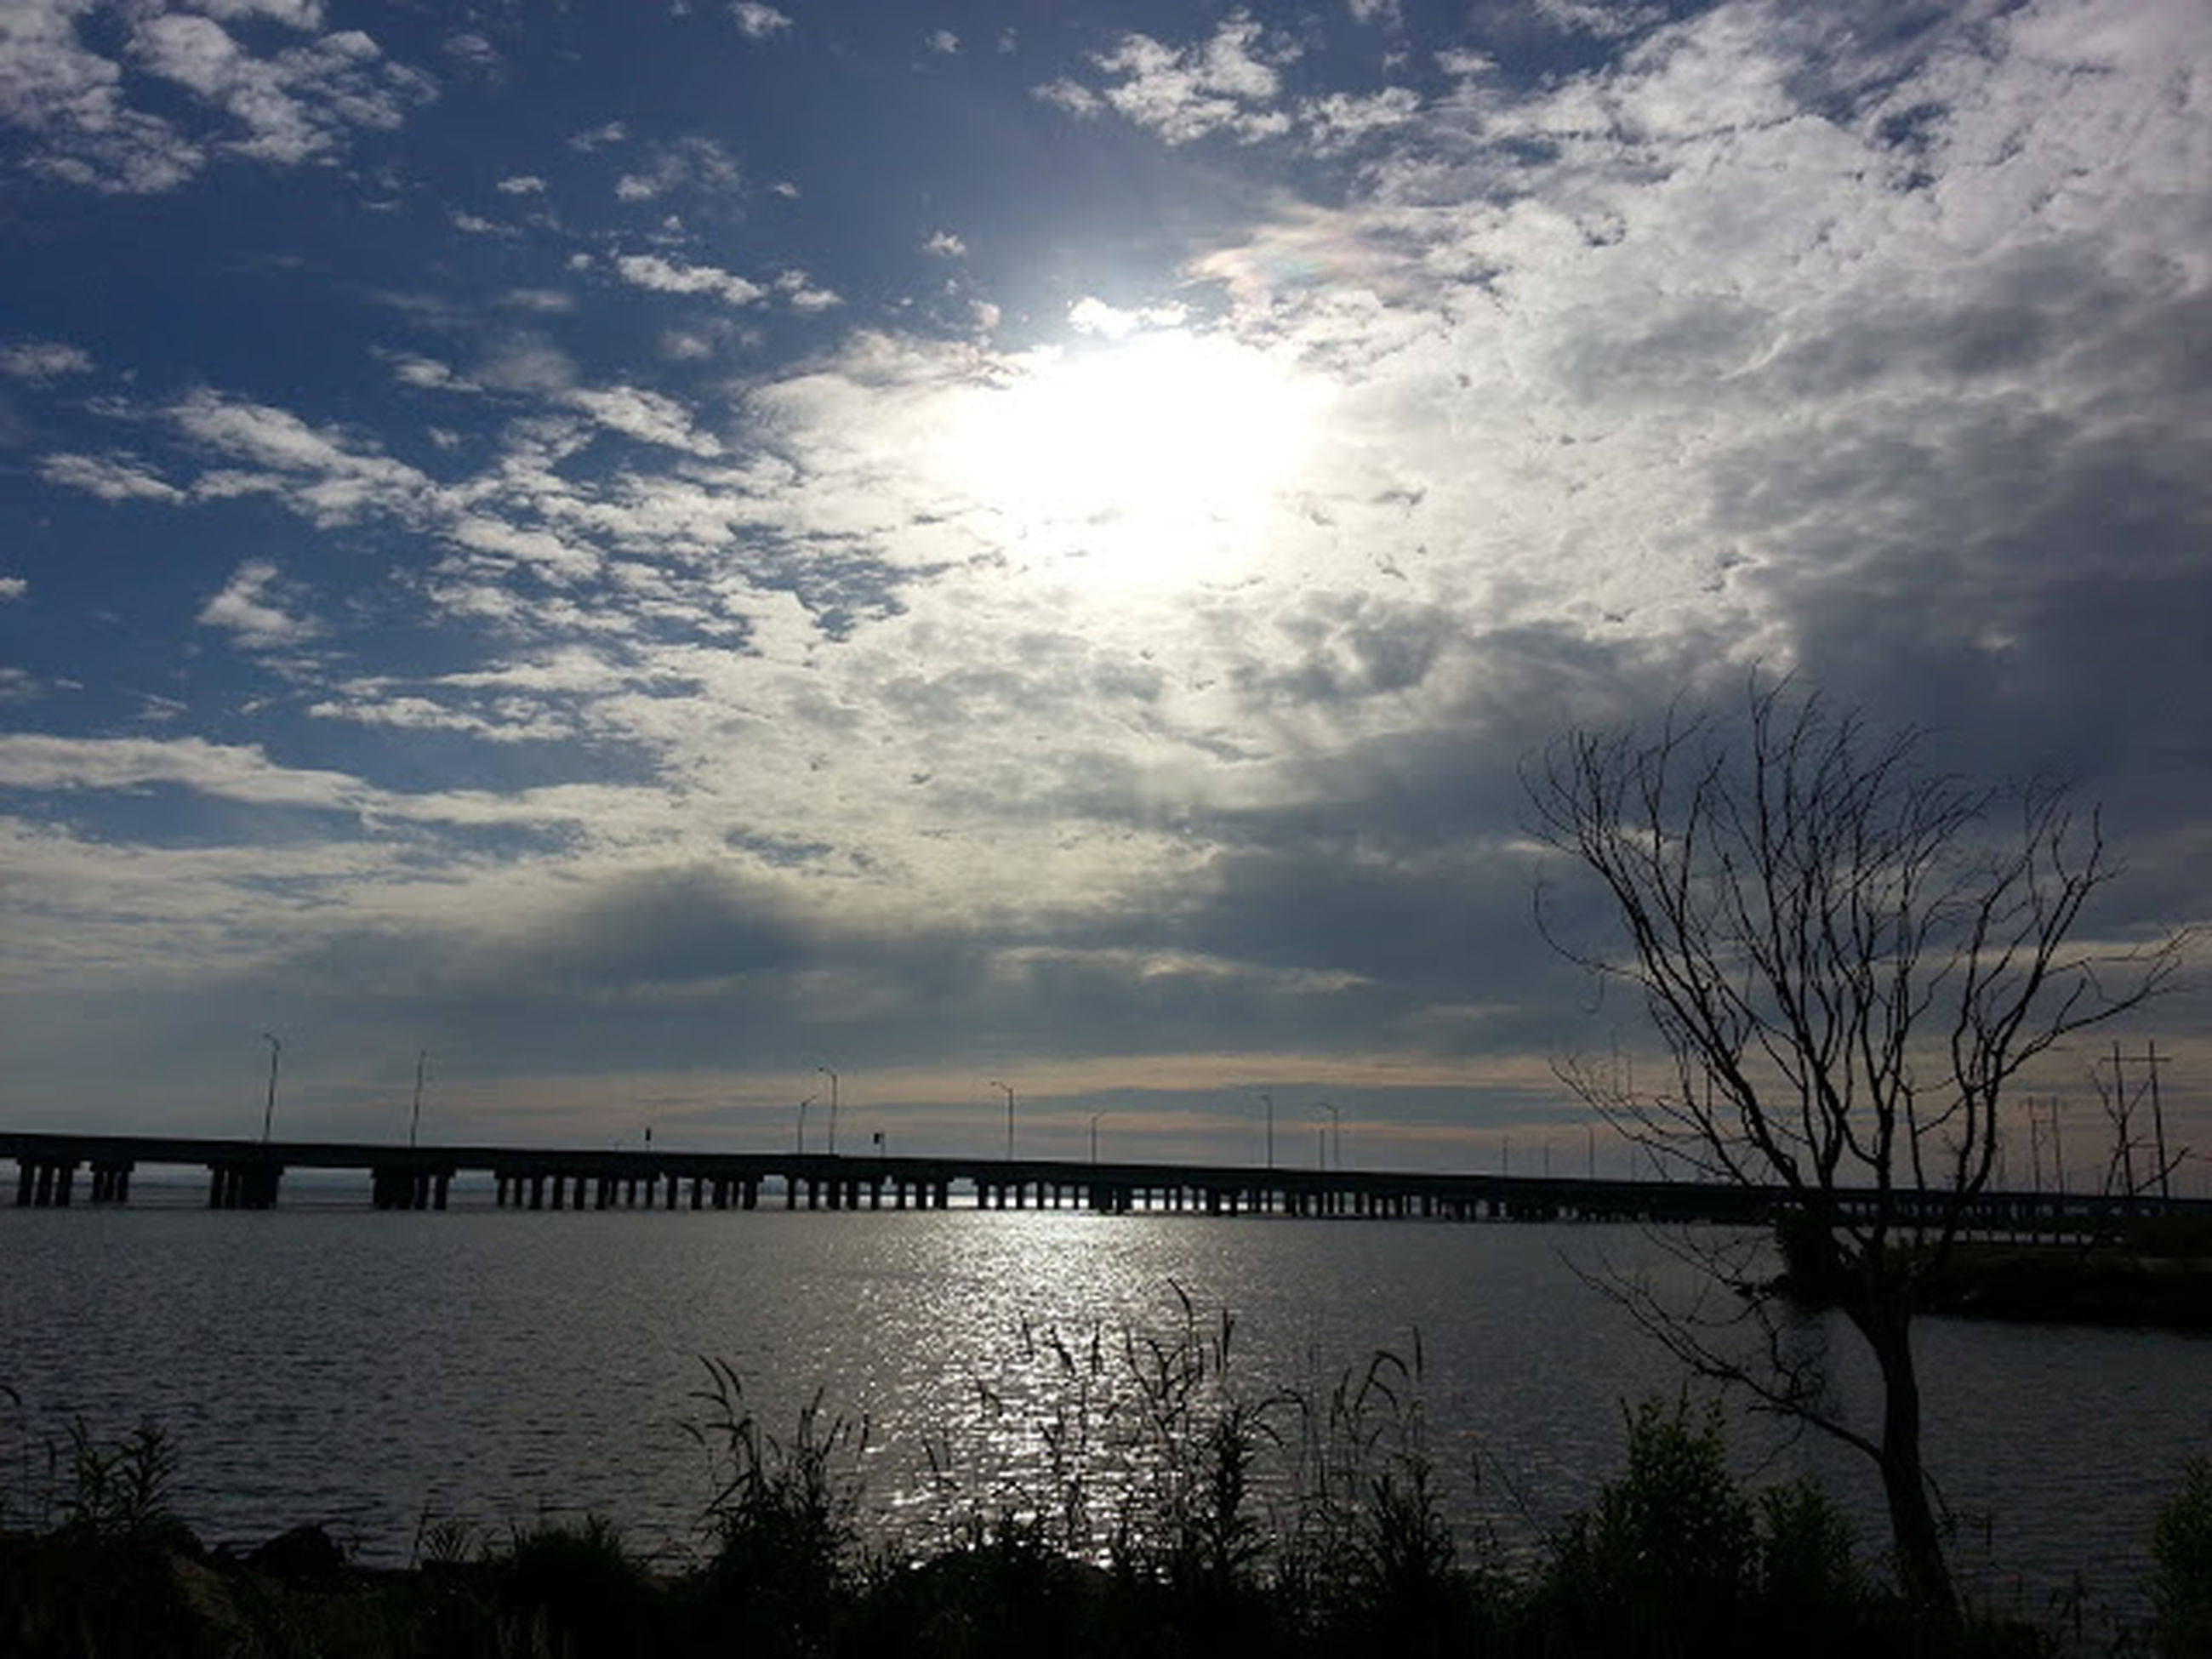 water, sky, sea, tranquility, tranquil scene, scenics, beauty in nature, sun, cloud - sky, sunset, nature, horizon over water, silhouette, beach, reflection, idyllic, sunlight, cloud, cloudy, shore